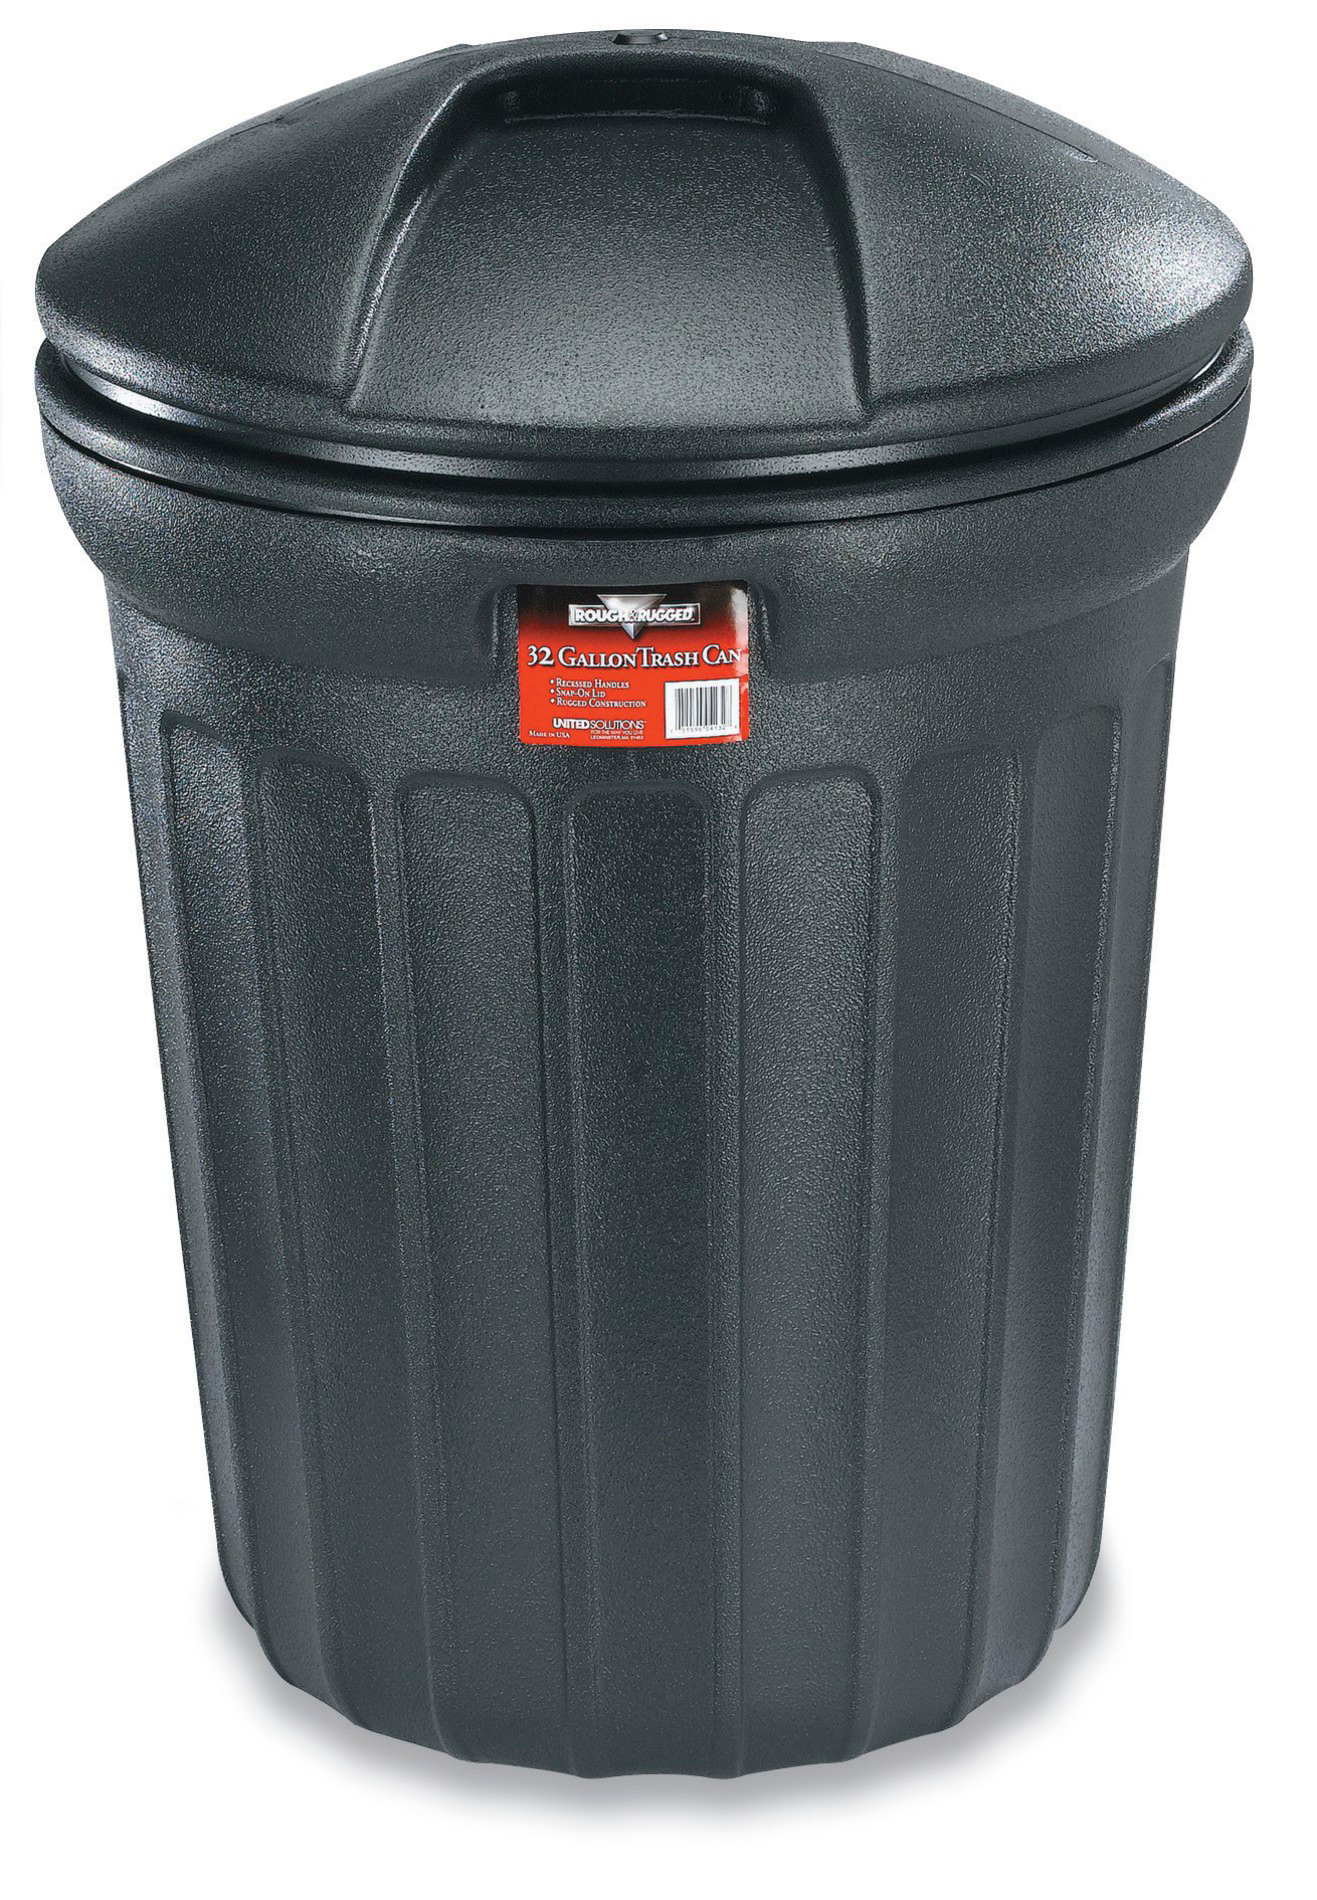 Colorful Garbage Cans Rough Rugged 73250206 Trash Can 32 Gallon